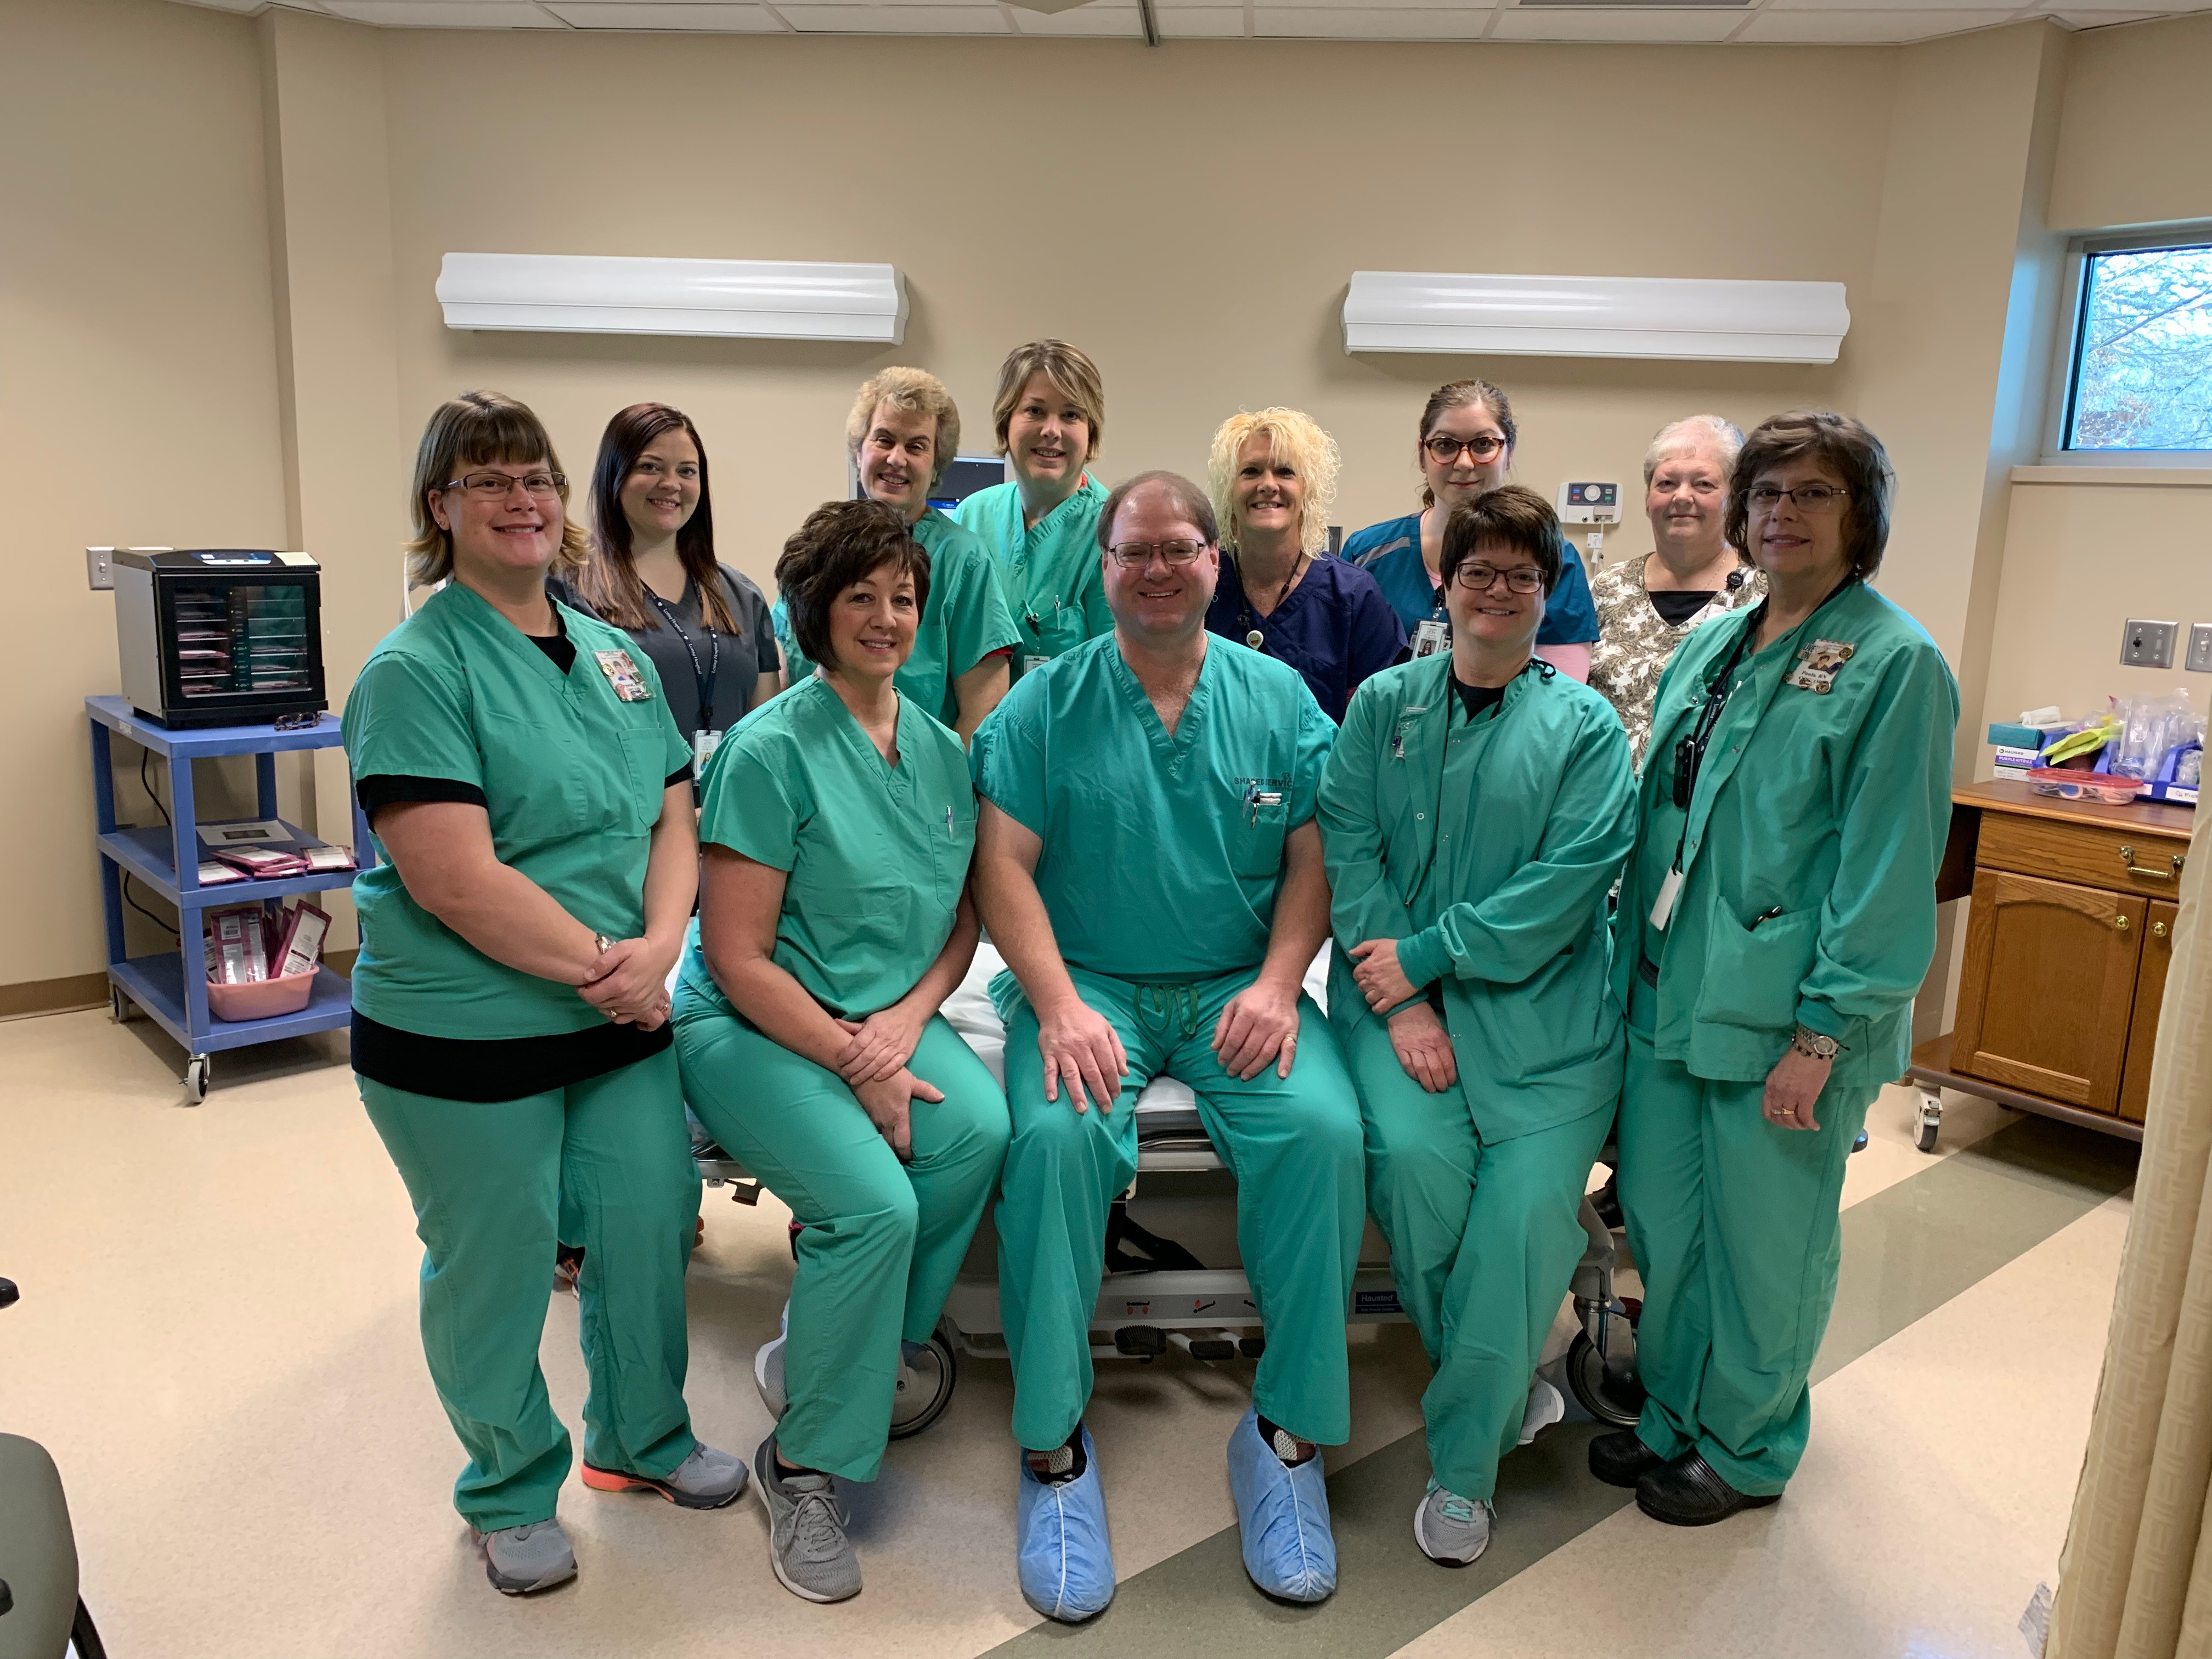 Dr. Ronald Cheney with Loring Hospital nurses